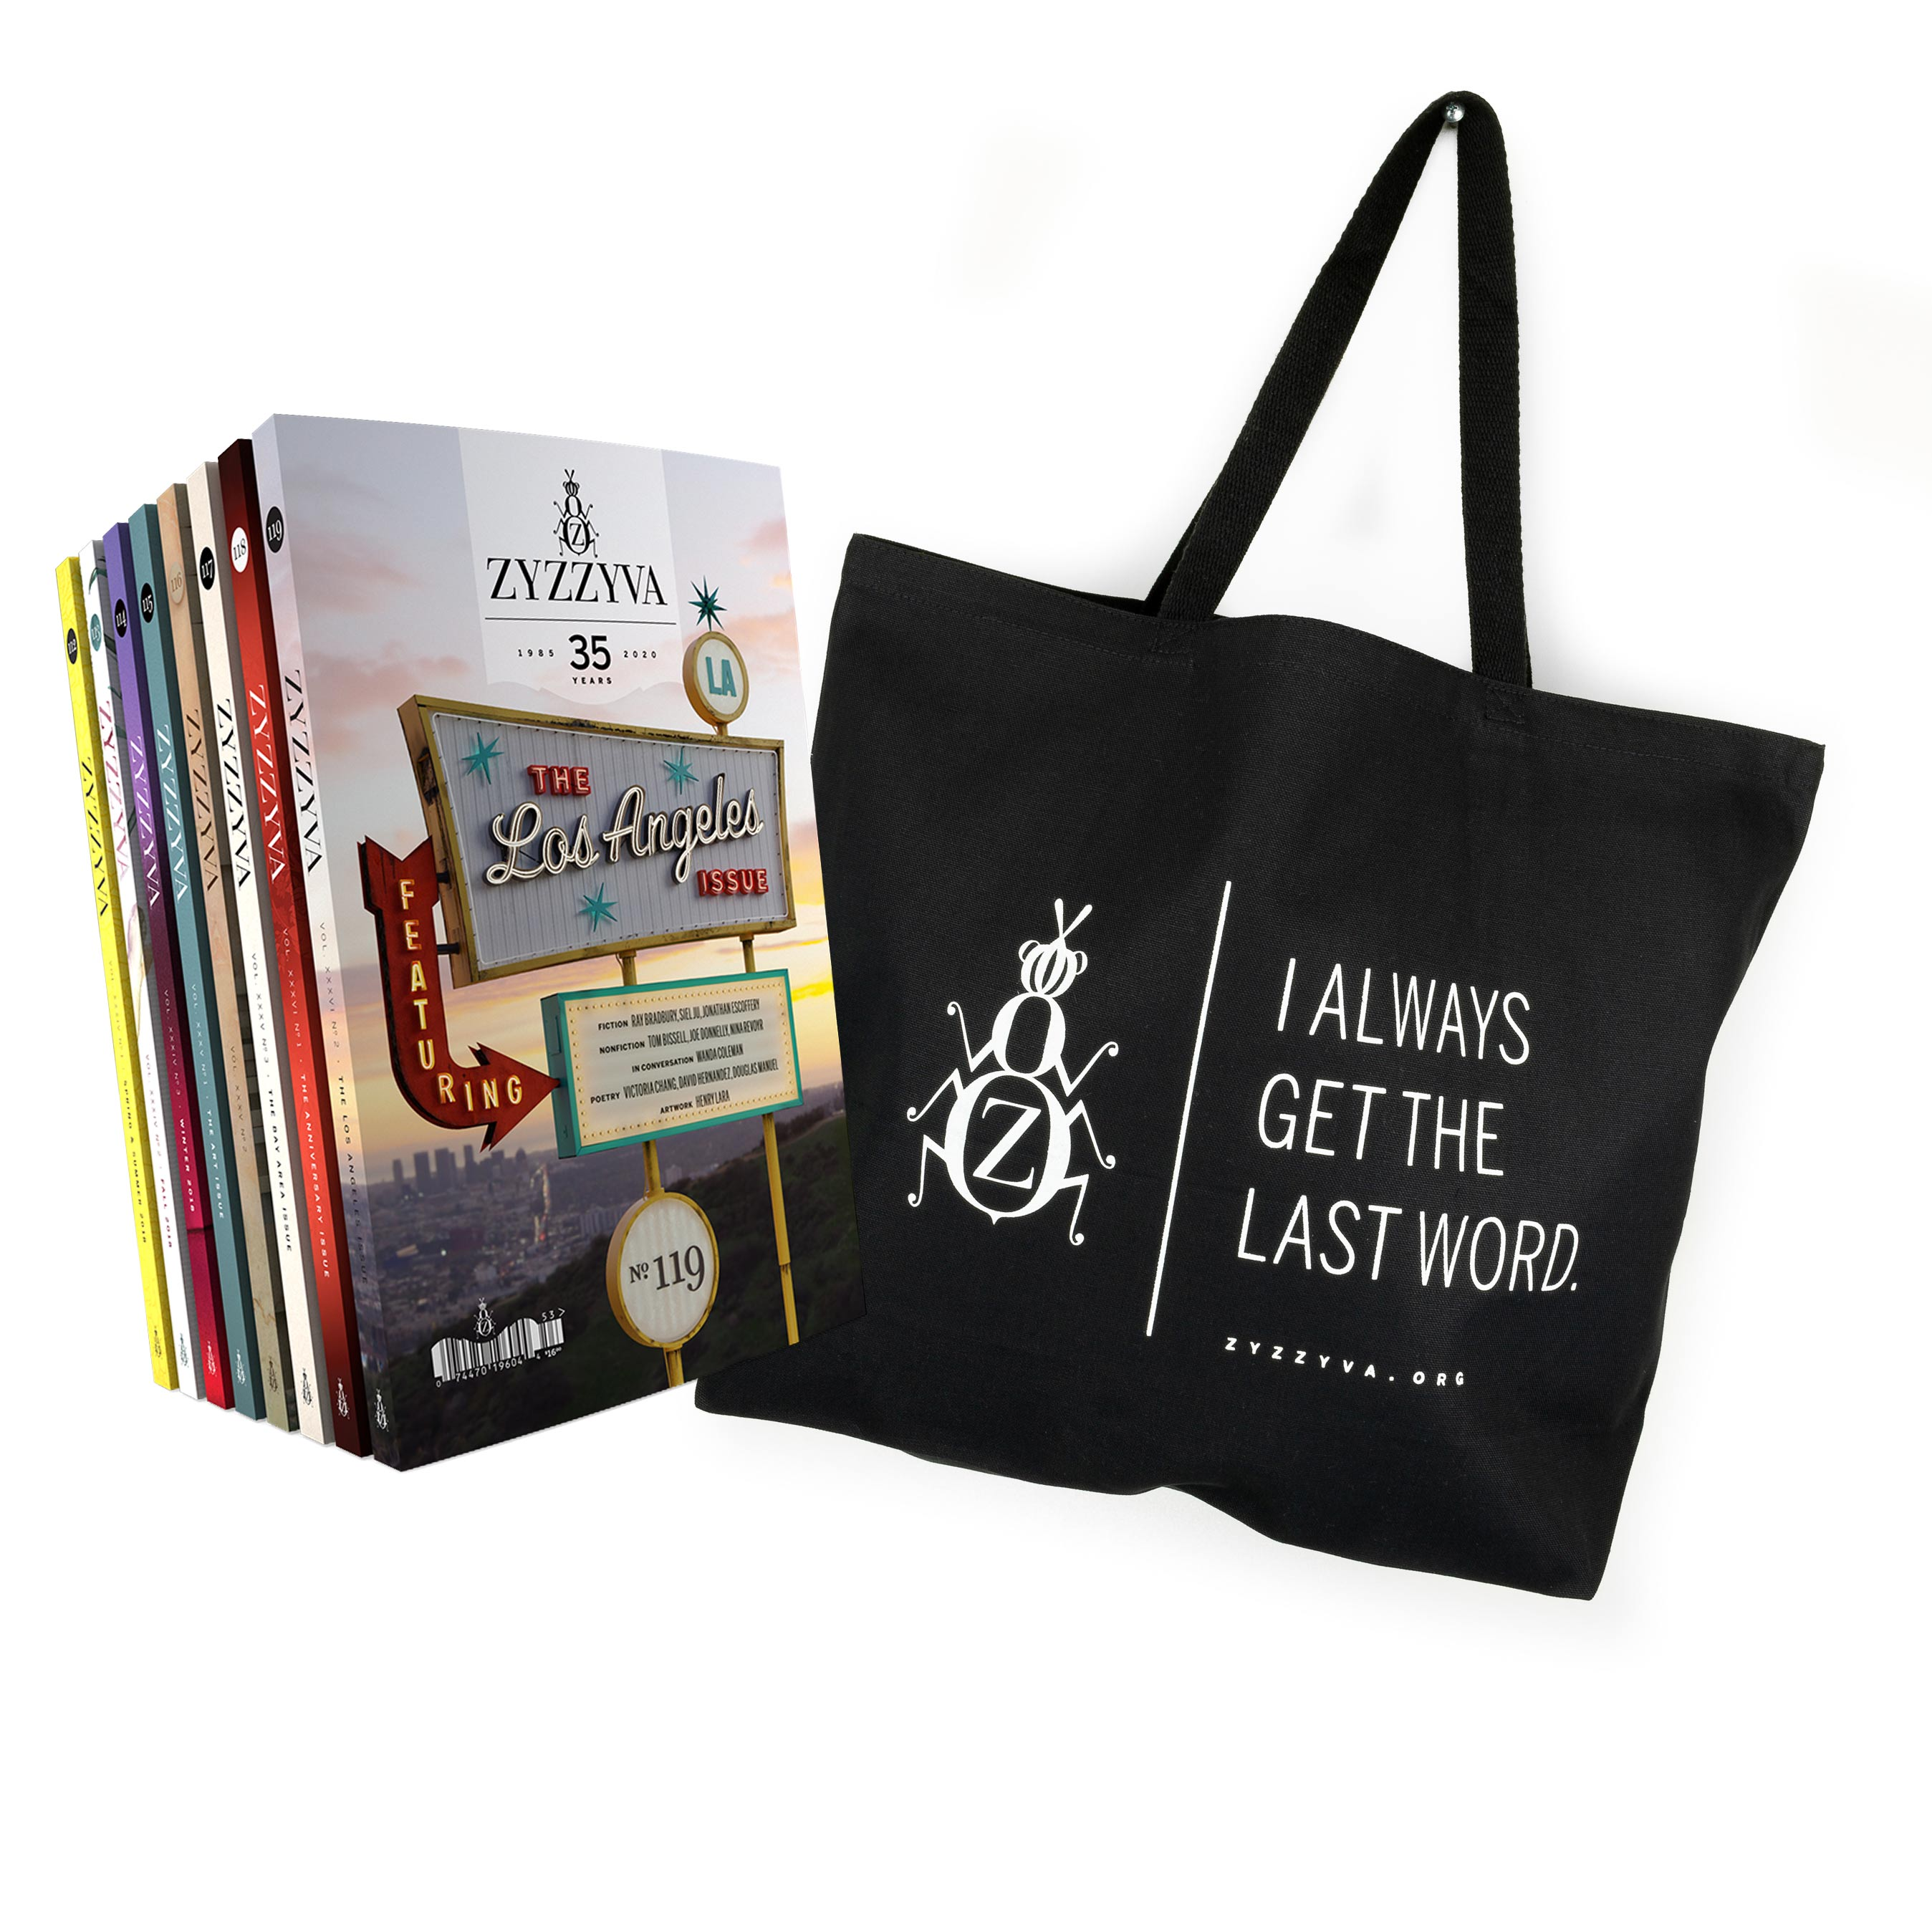 ZYZZYVA Tote Bag and 8-Issue Subscription Bundle